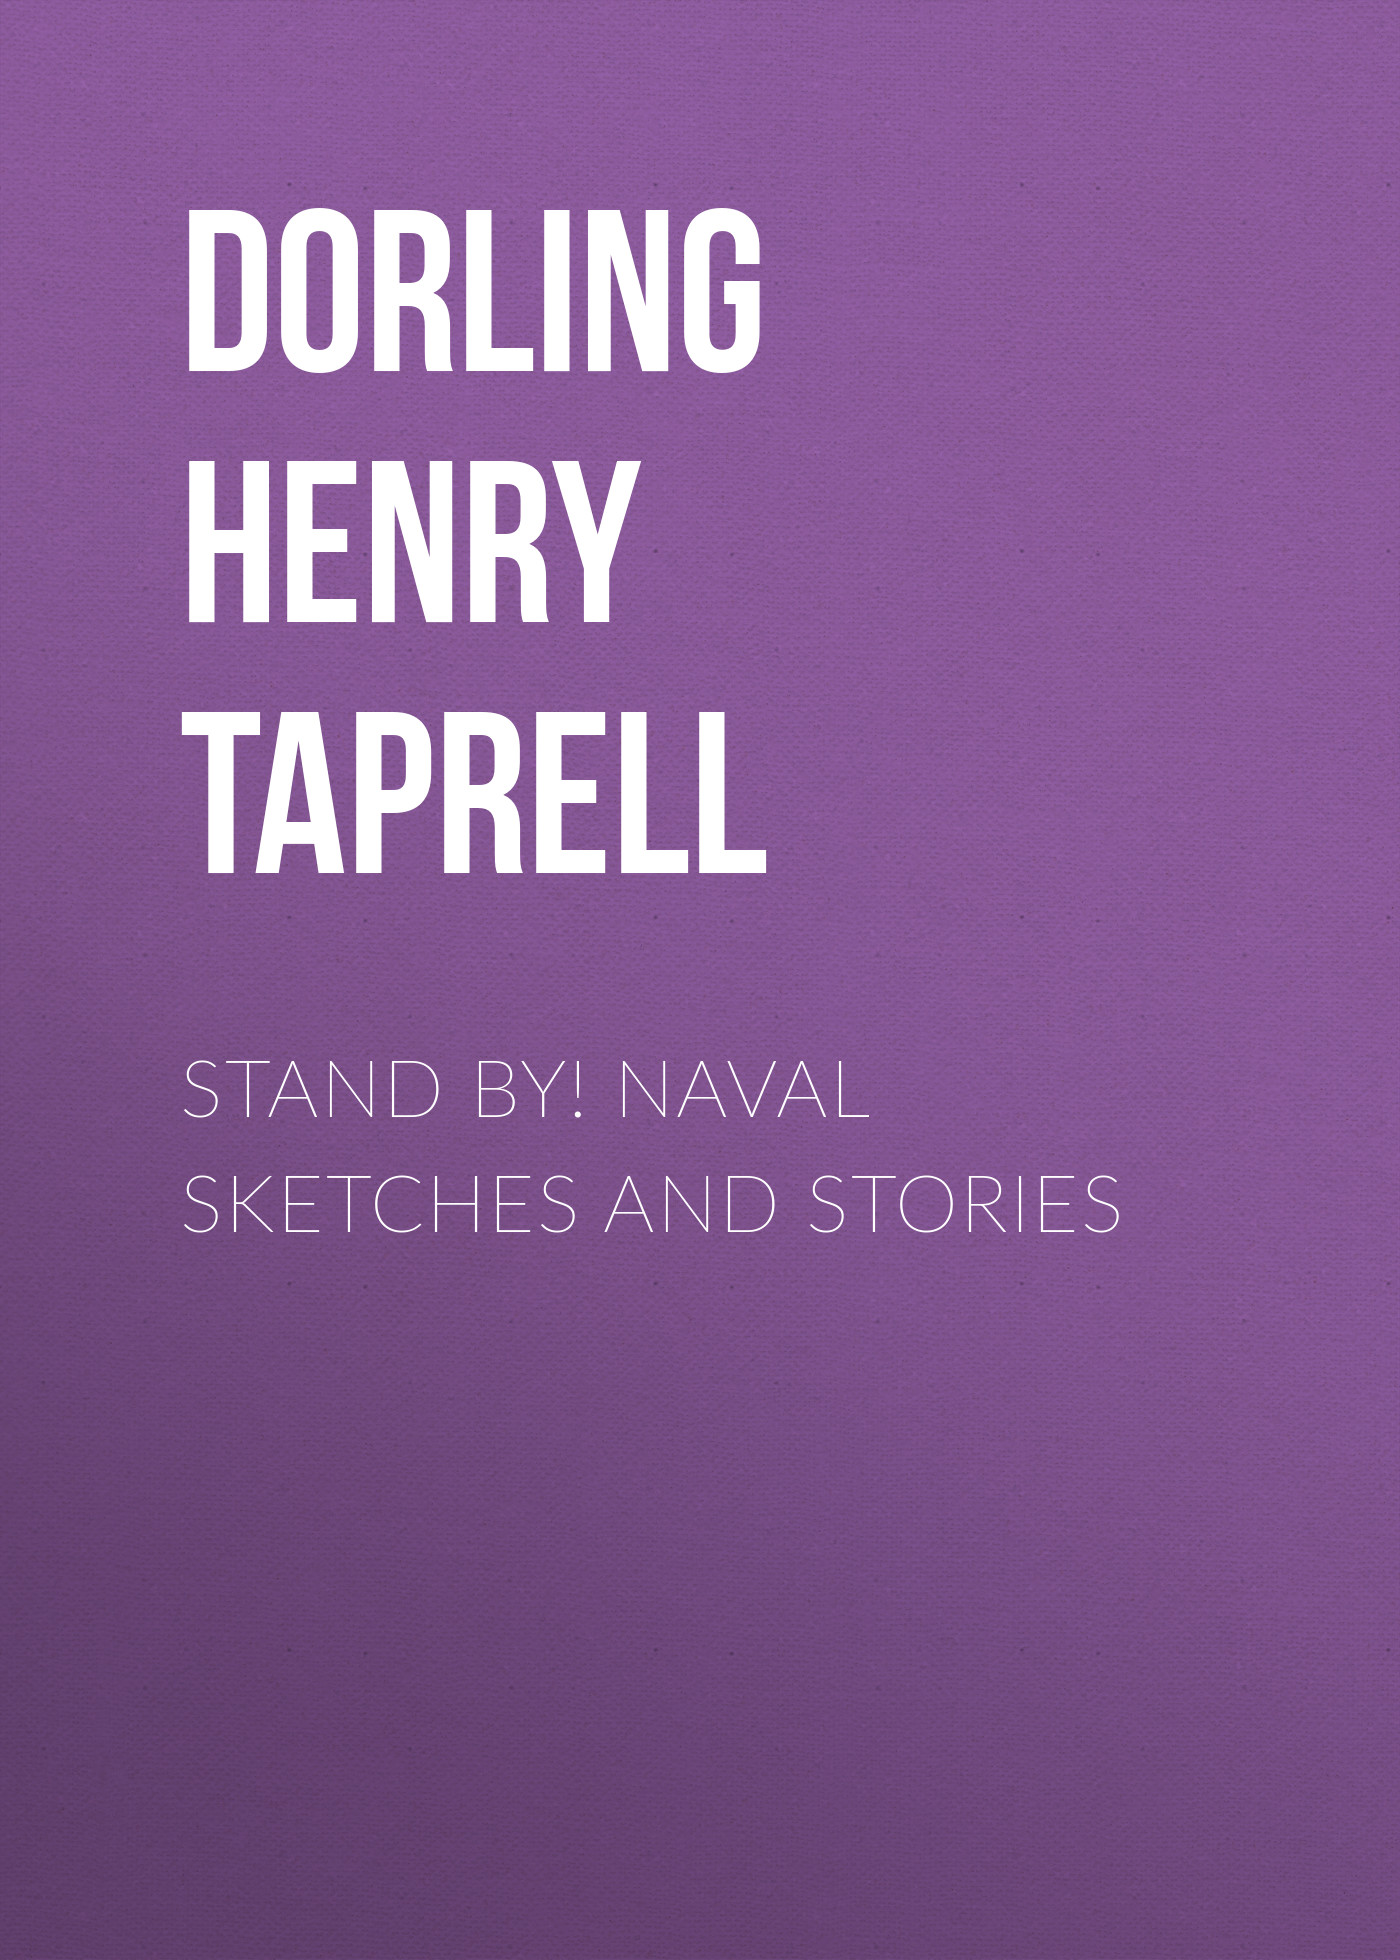 Dorling Henry Taprell Stand By! Naval Sketches and Stories dorling henry taprell stand by naval sketches and stories